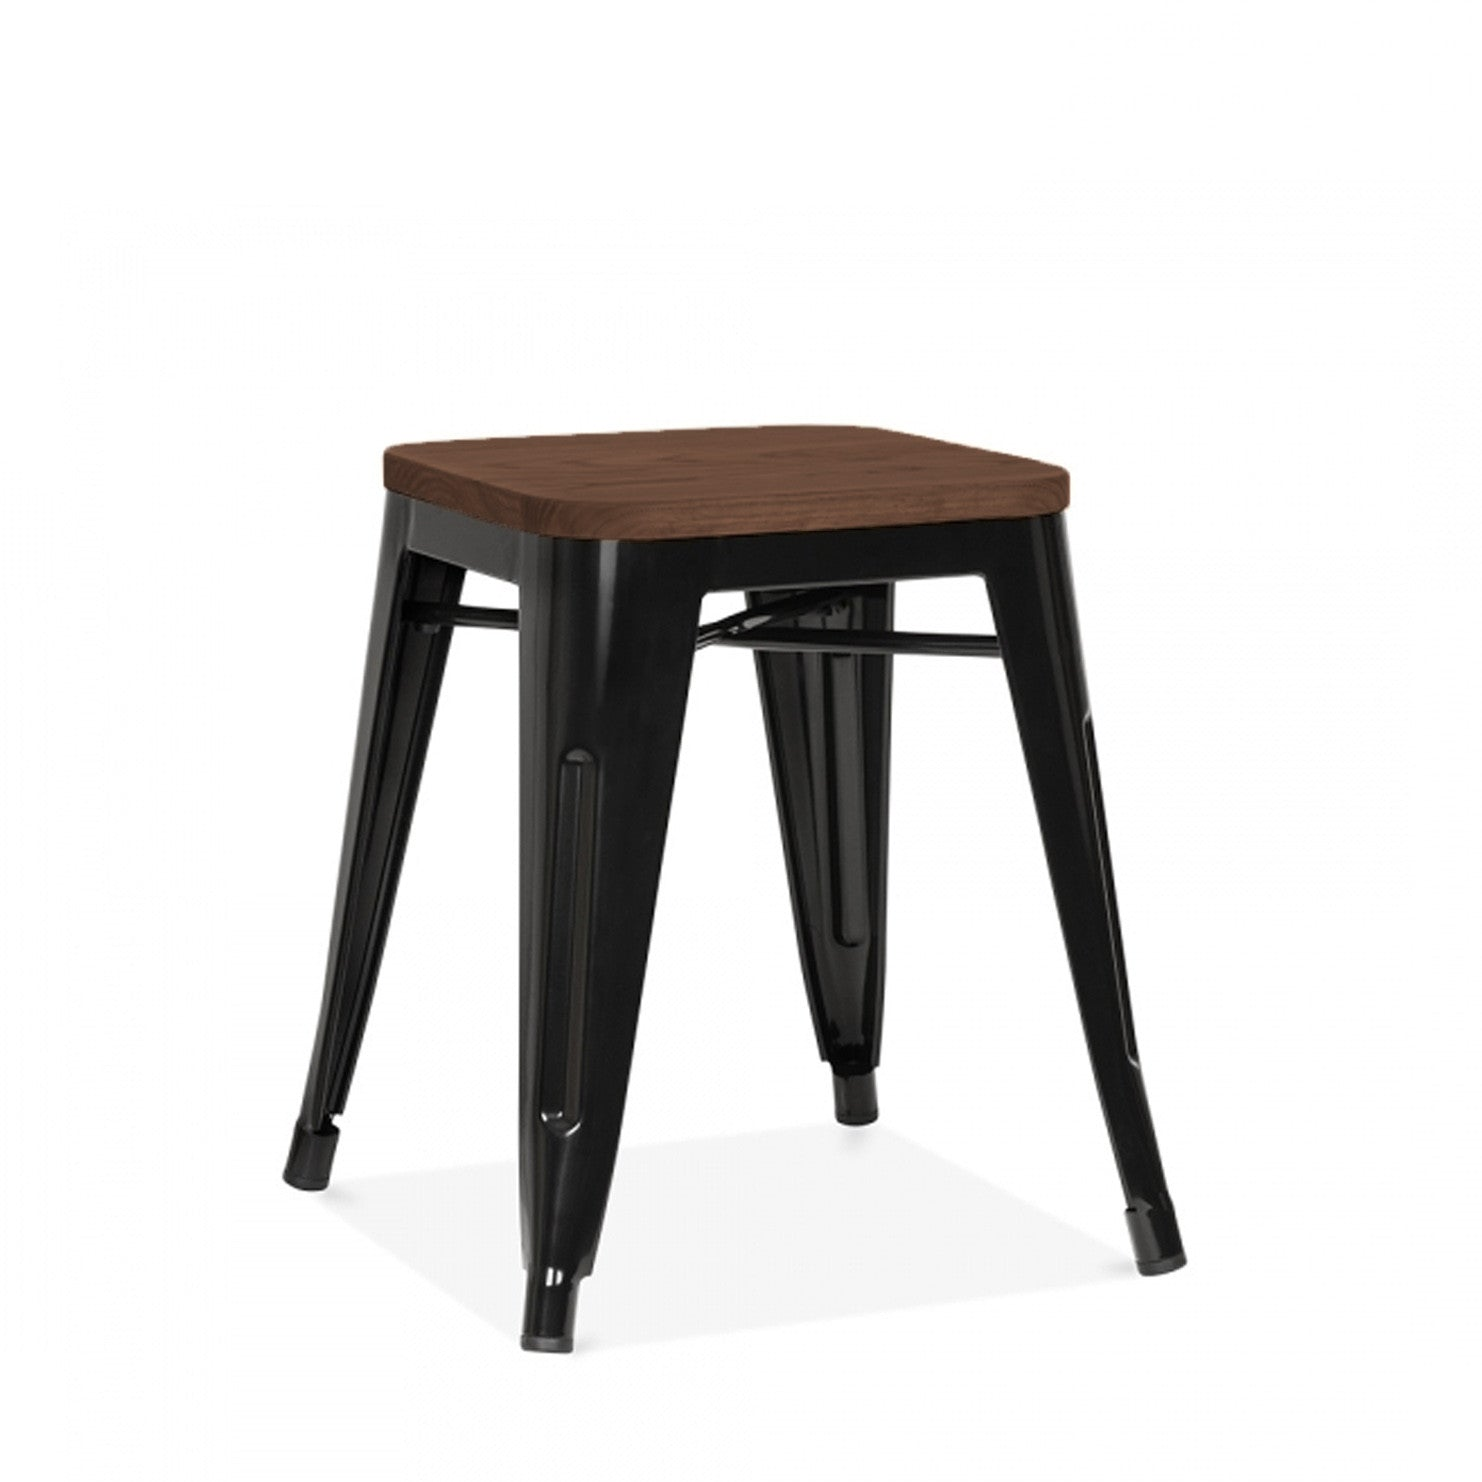 Low Stool/Chair Z-01-BW -T618 -  مقعد منخفض / كرسي - Shop Online Furniture and Home Decor Store in Dubai, UAE at ebarza